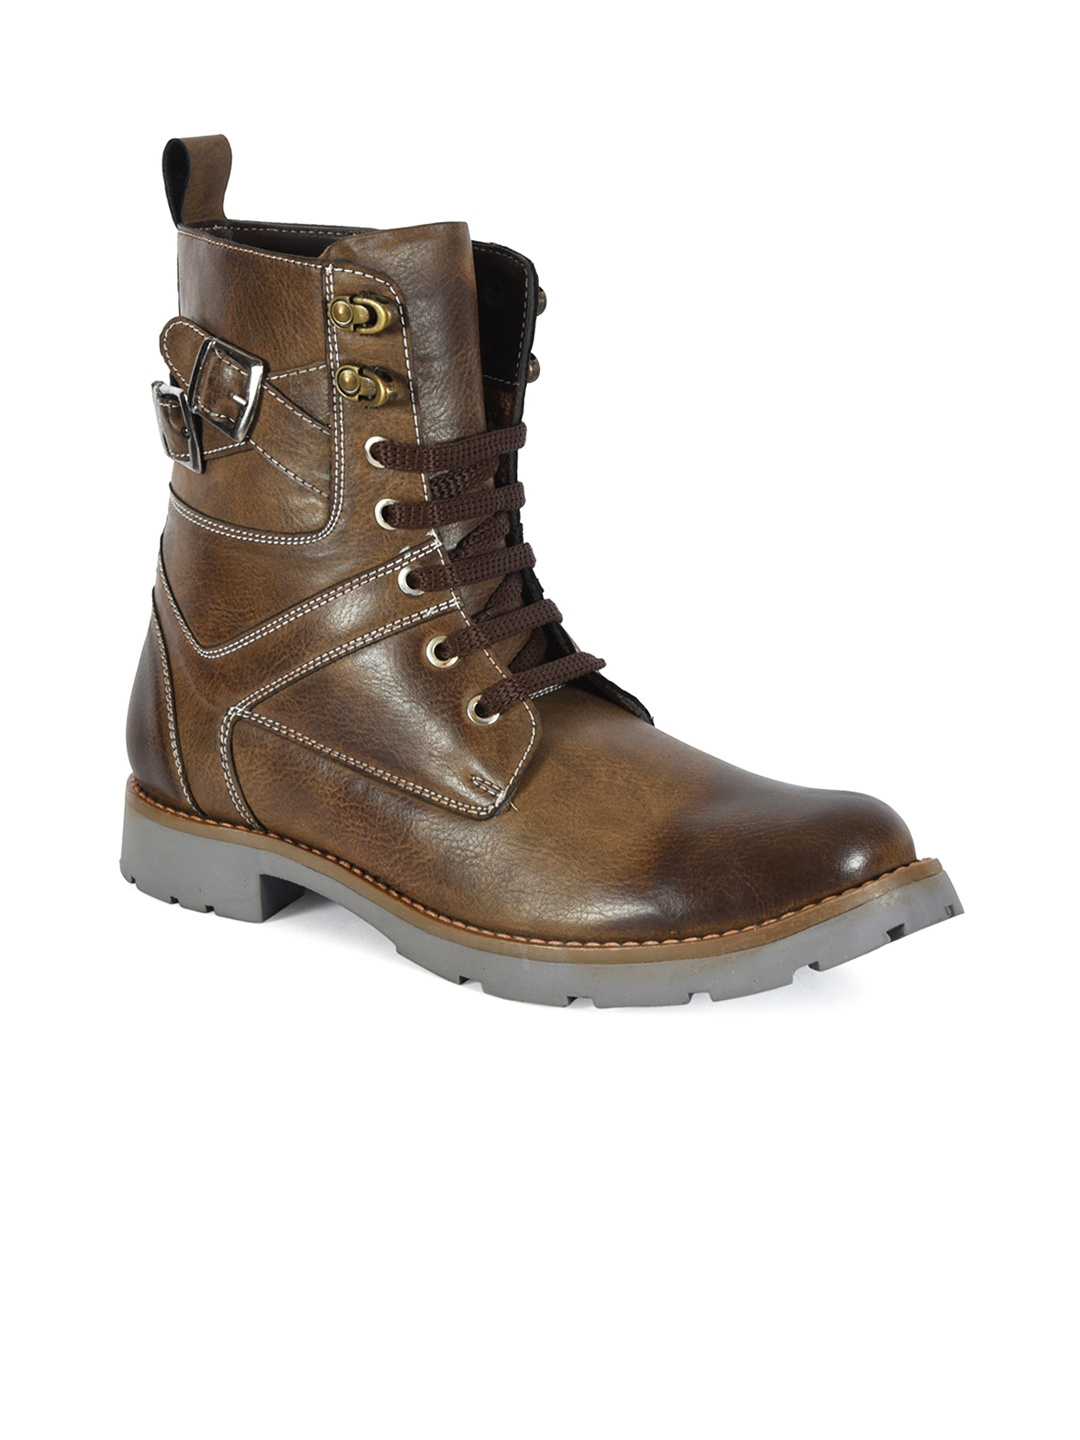 c8eda6dd154 Buy Bacca Bucci Men Brown Solid Synthetic Leather High Top Flat ...